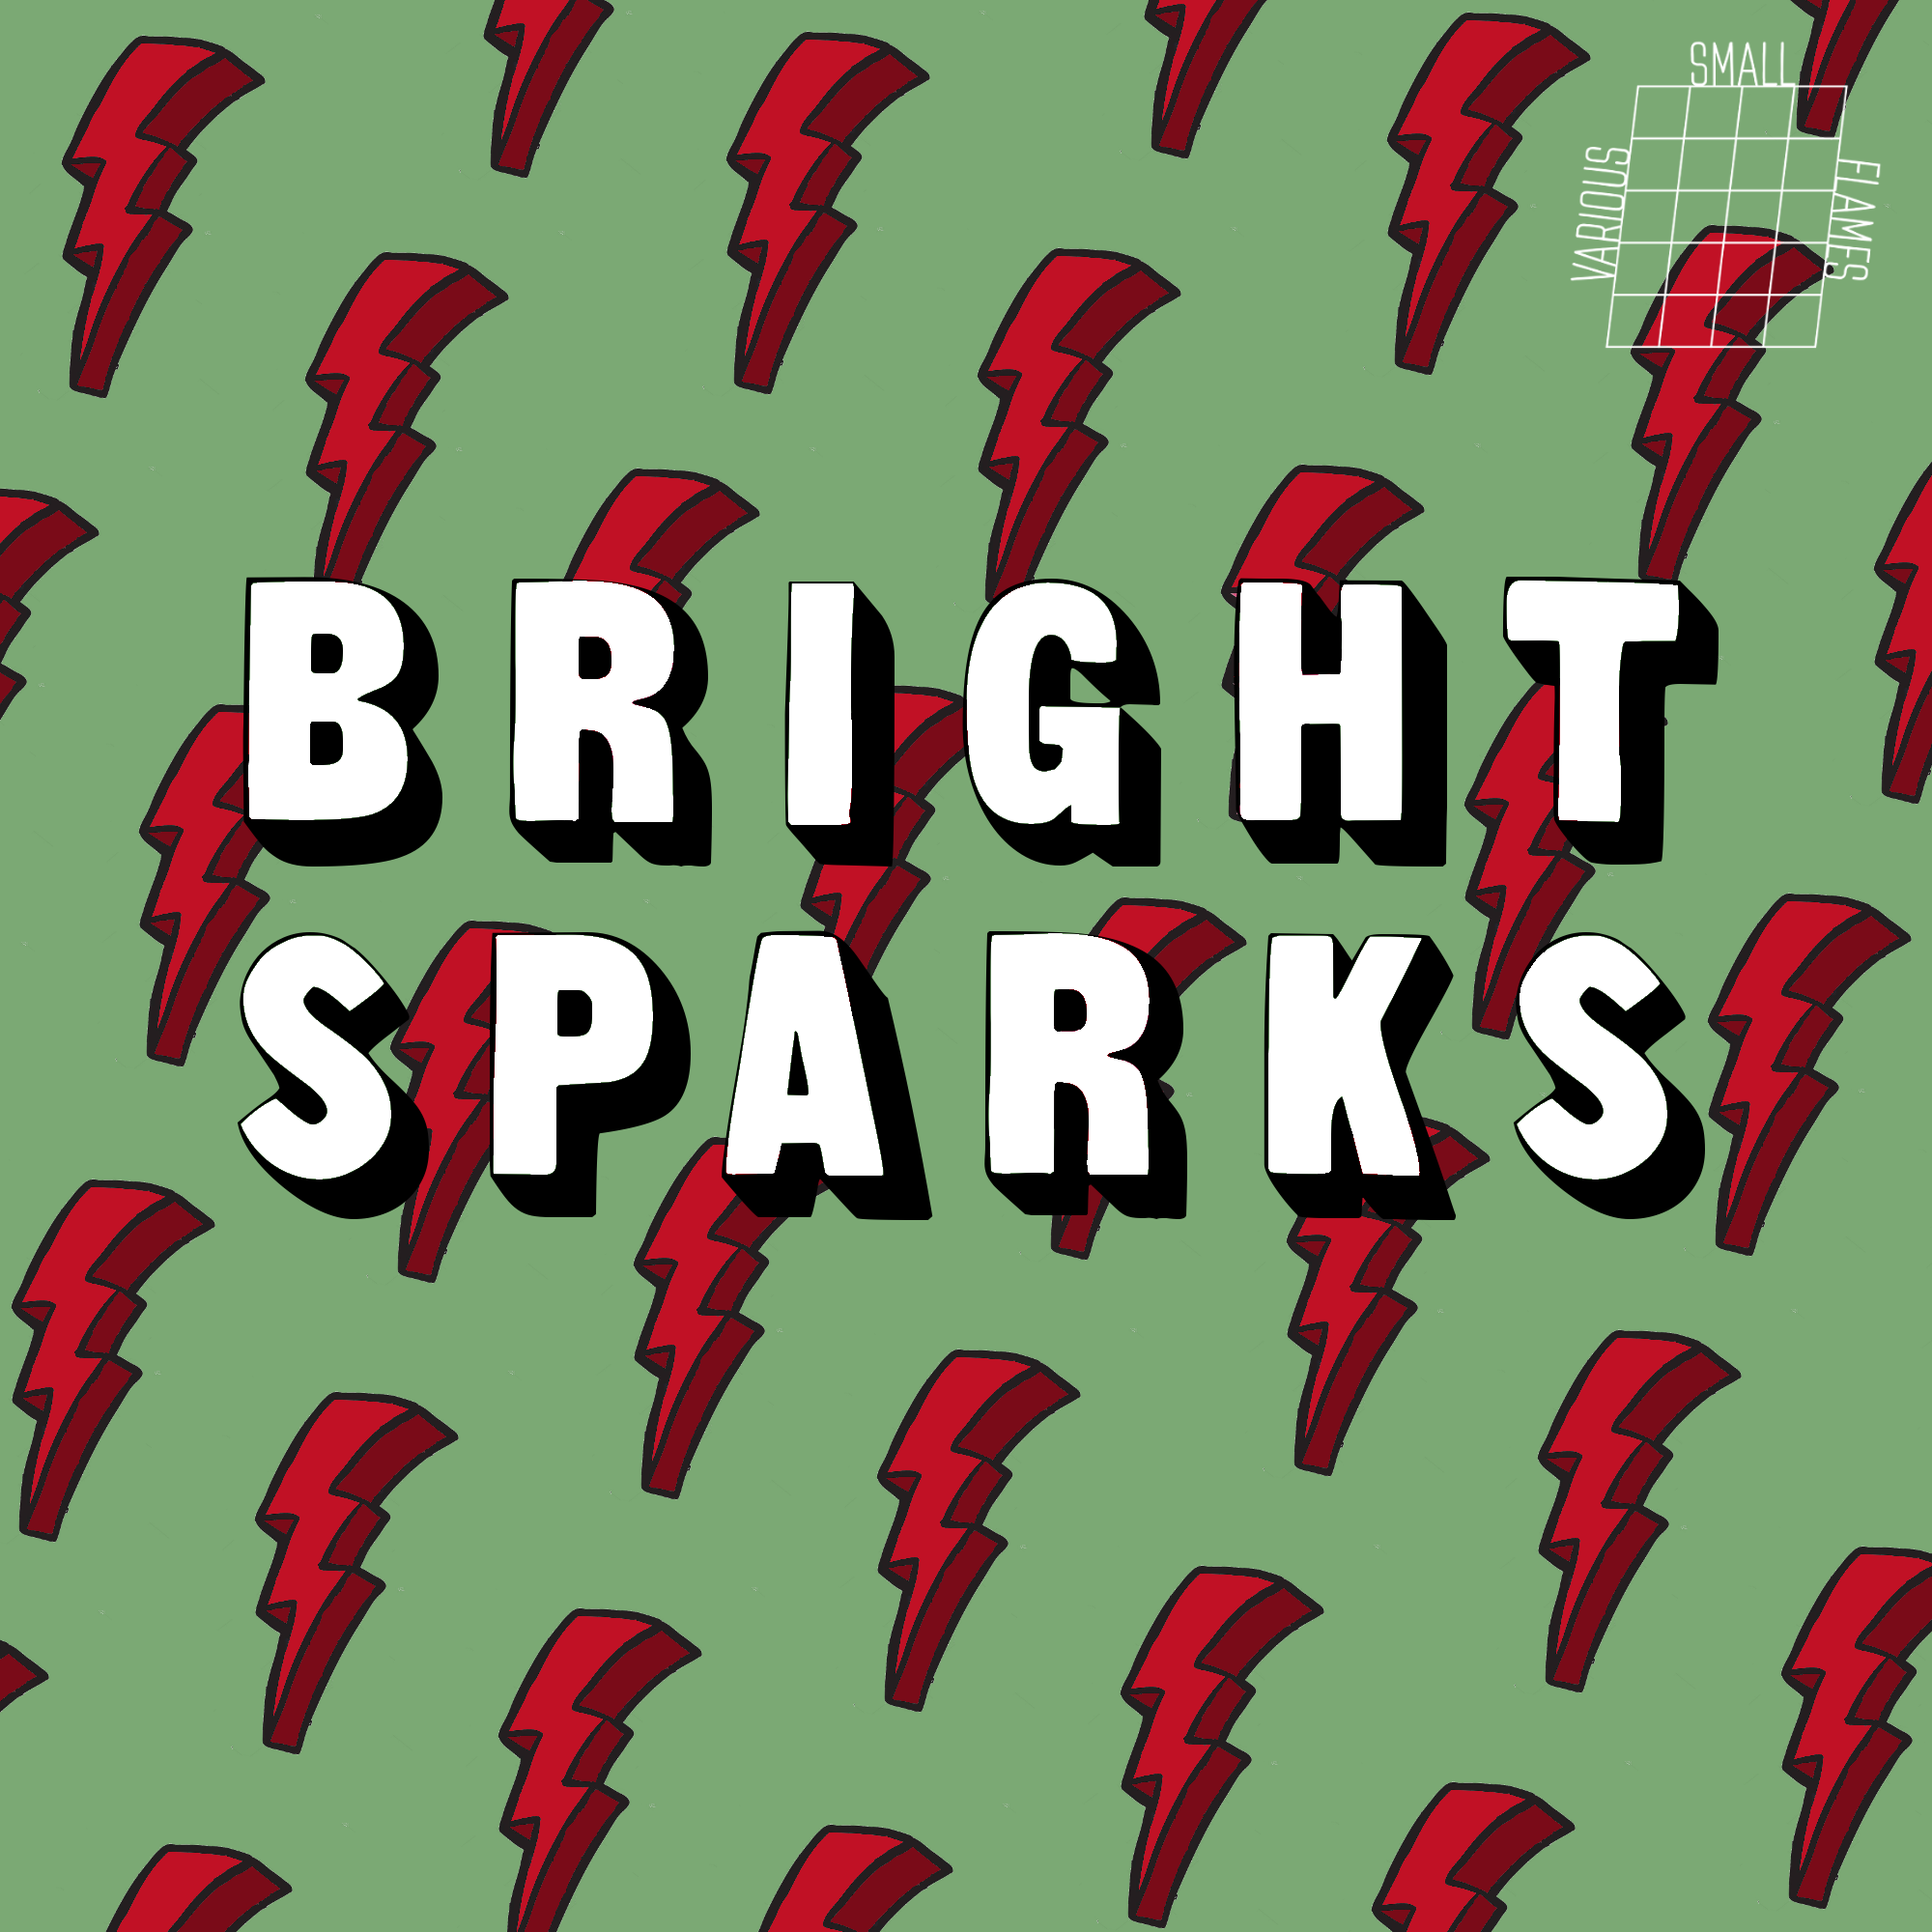 cartoon lightning bolts behind text that says Bright Sparks